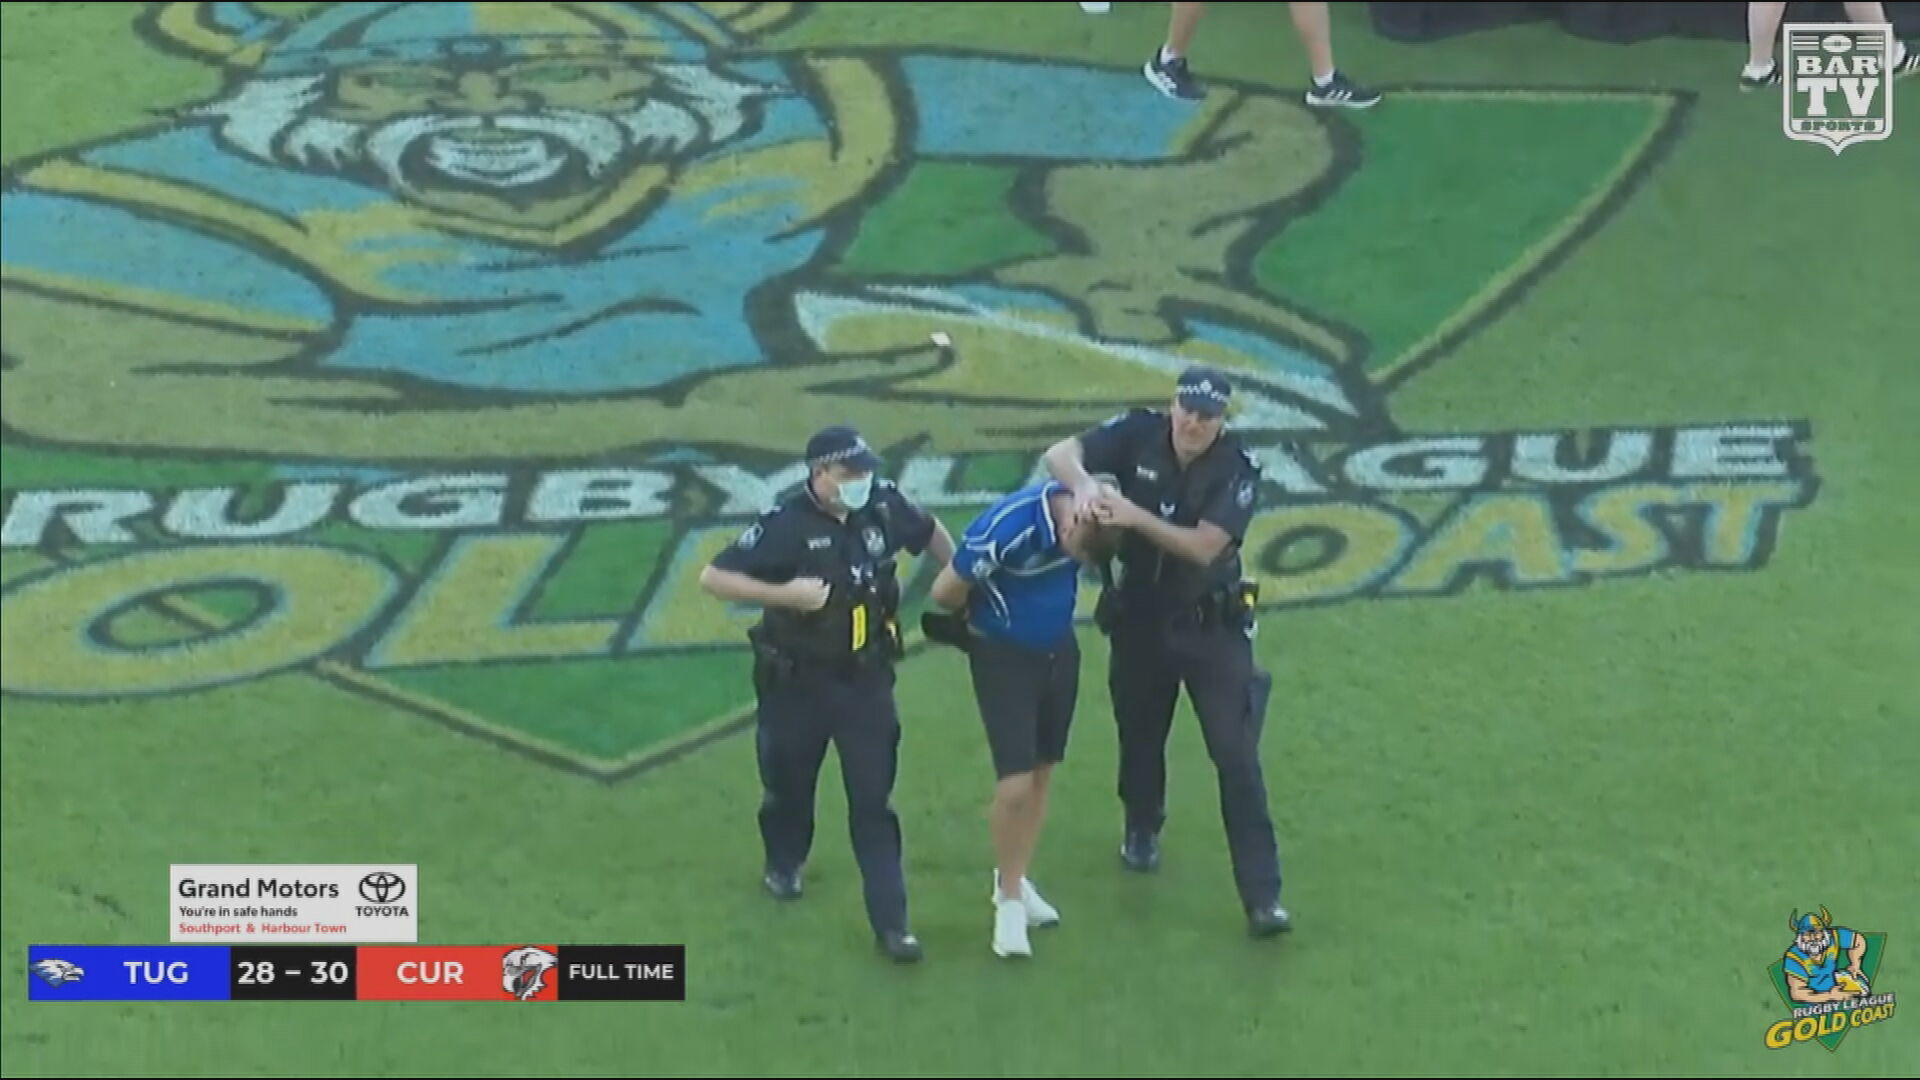 Queensland referee allegedly punched by disgruntled football fan